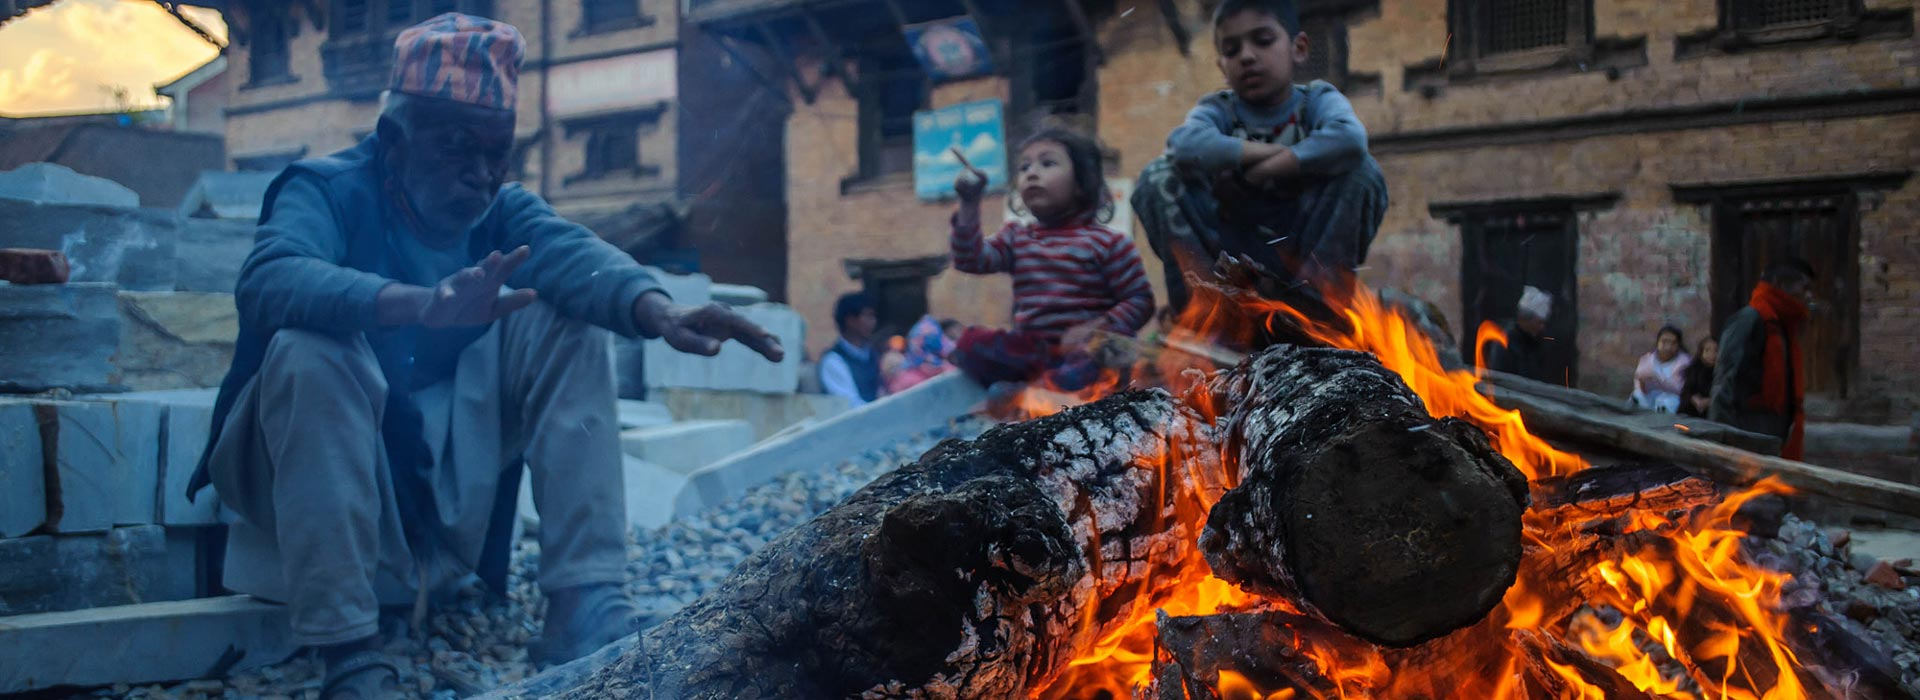 Getting heated from the burning firewood during the festival of Shivaratri